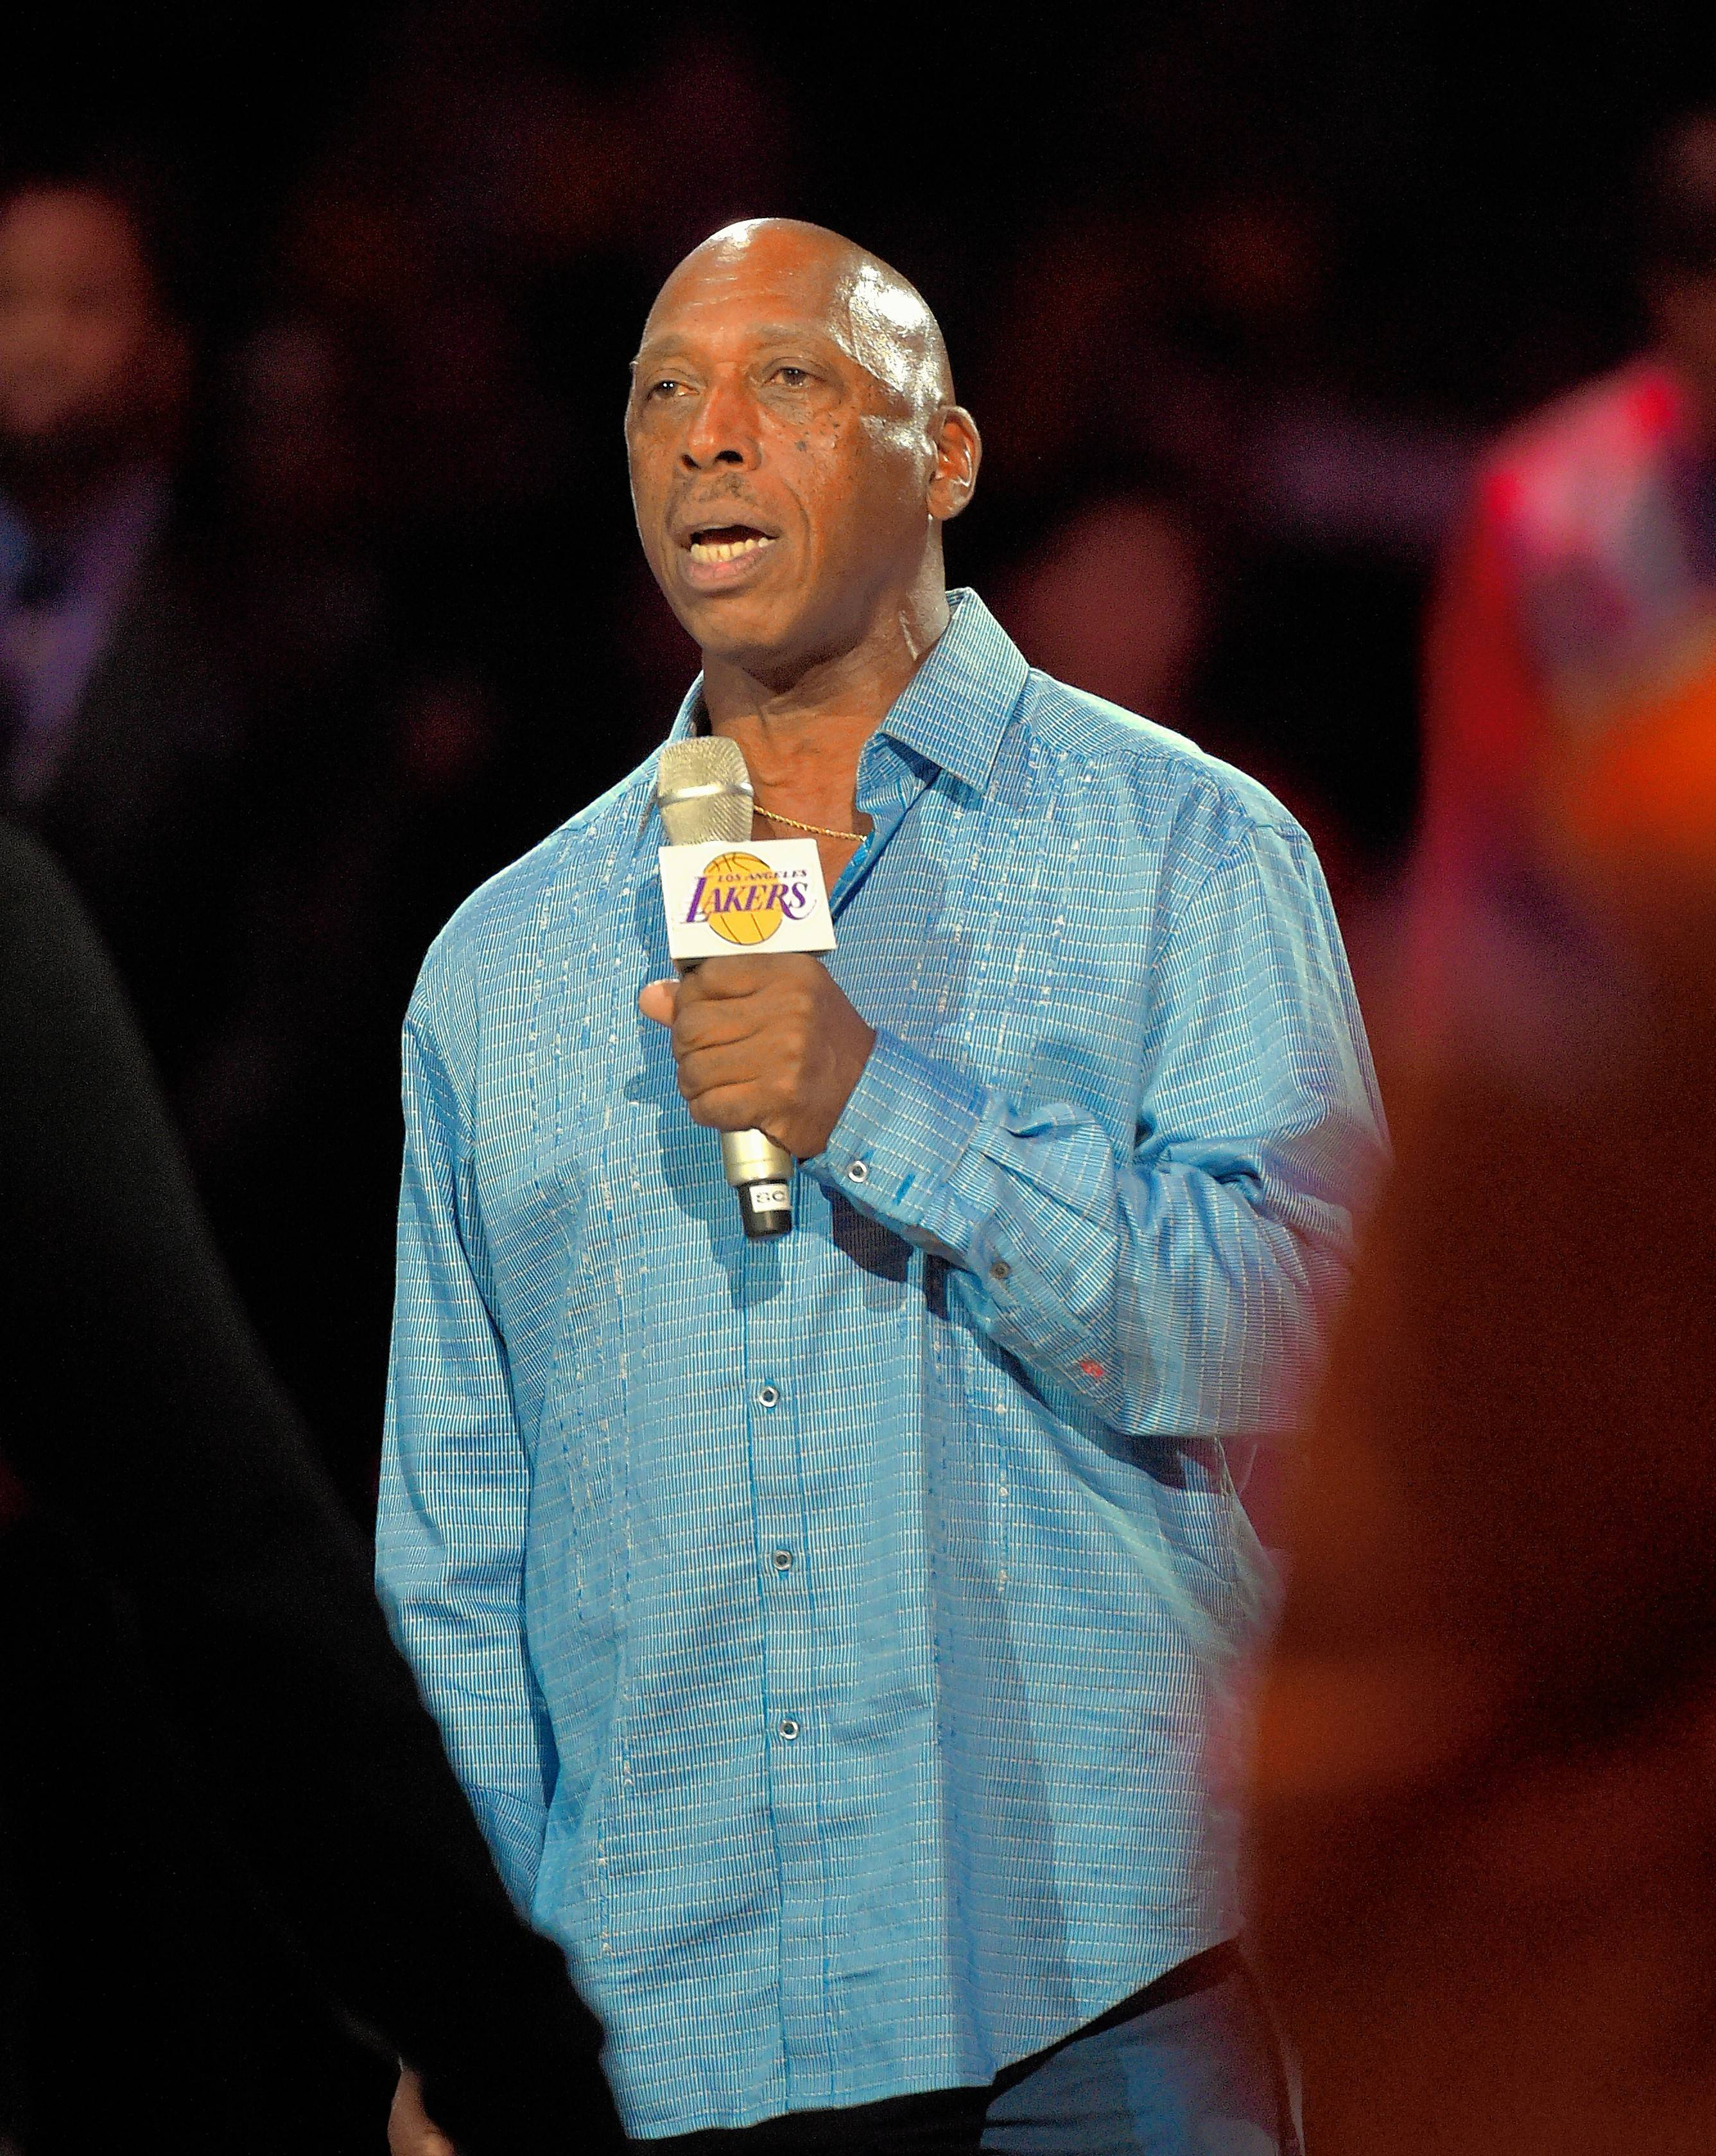 R&B singer Jeffrey Osborne performs at the Genesee Theatre in Waukegan on Friday, Nov. 17.